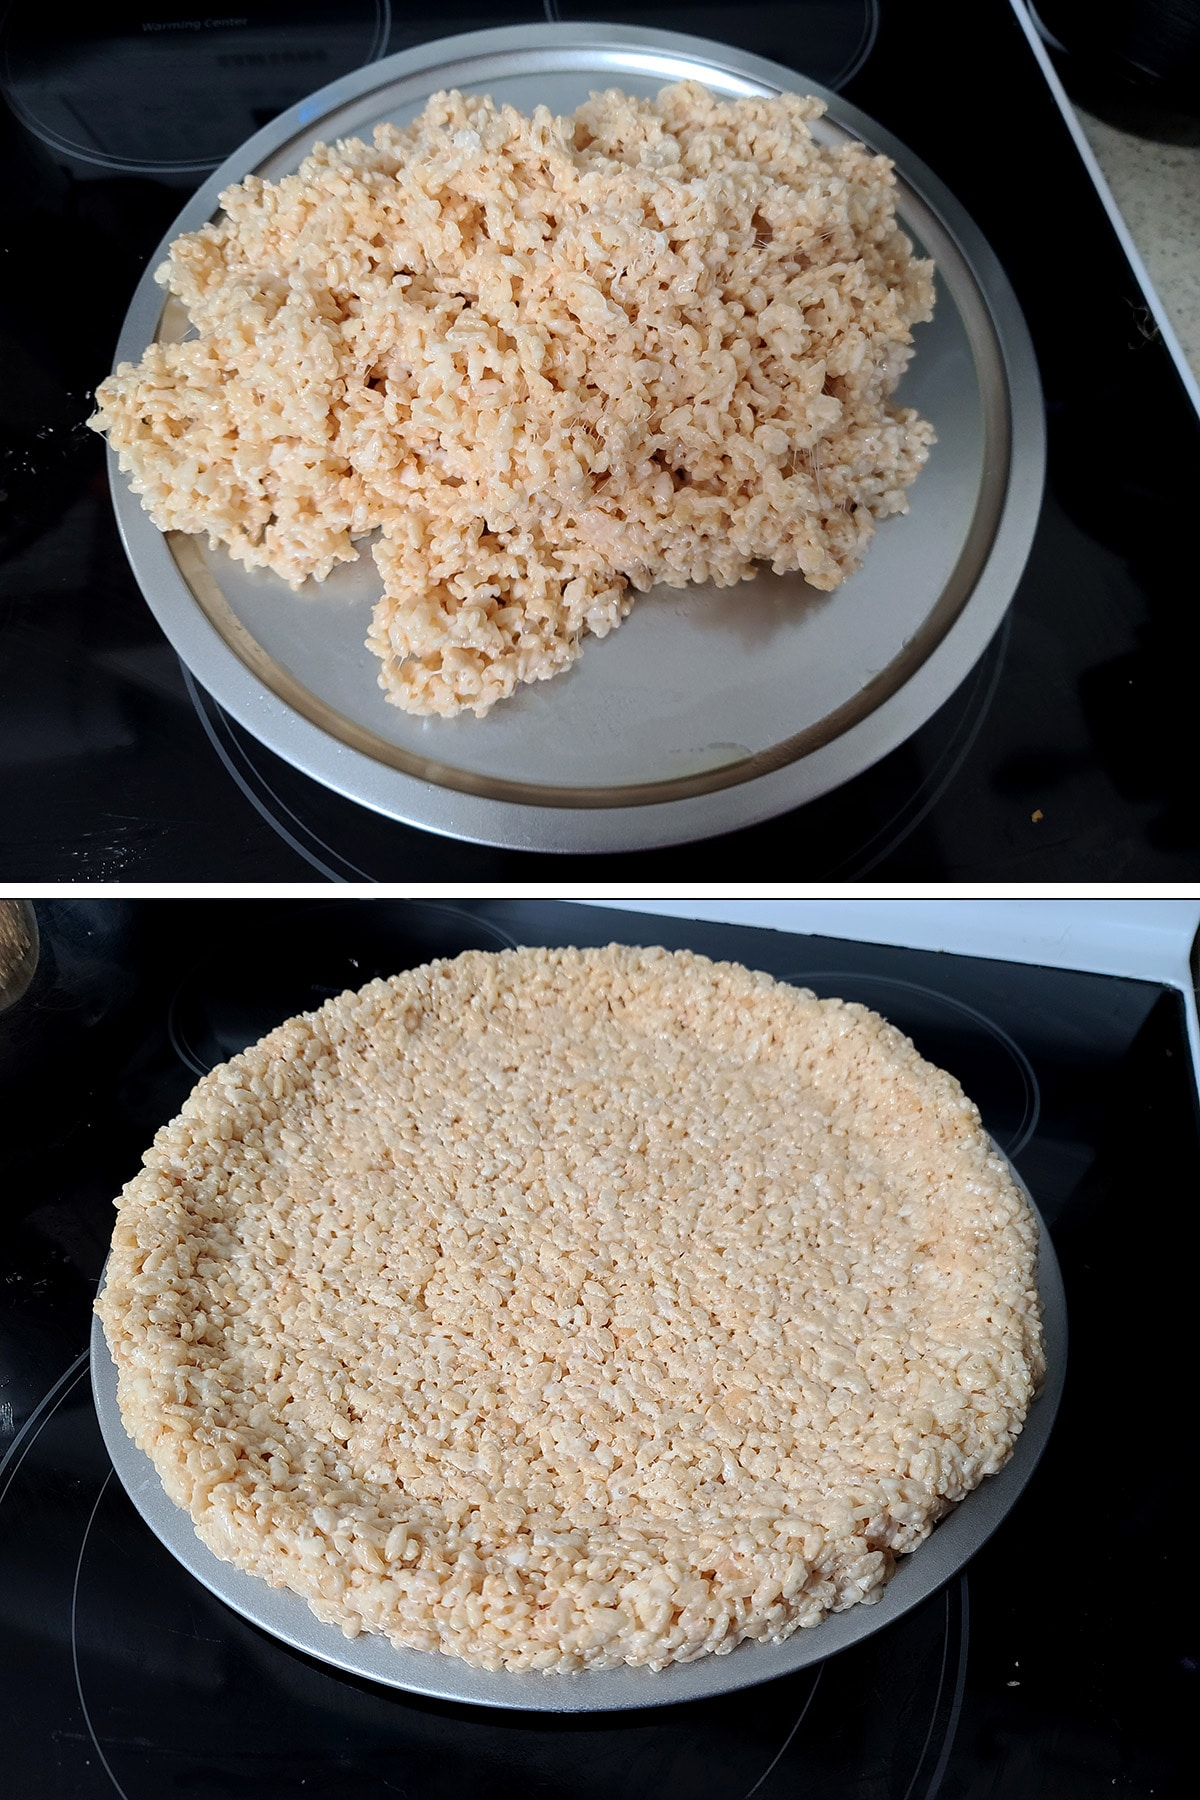 A two part compilation image showing rice crispy treat mix dumped into a pizza pan, then spread out and formed into a crust in the pan.